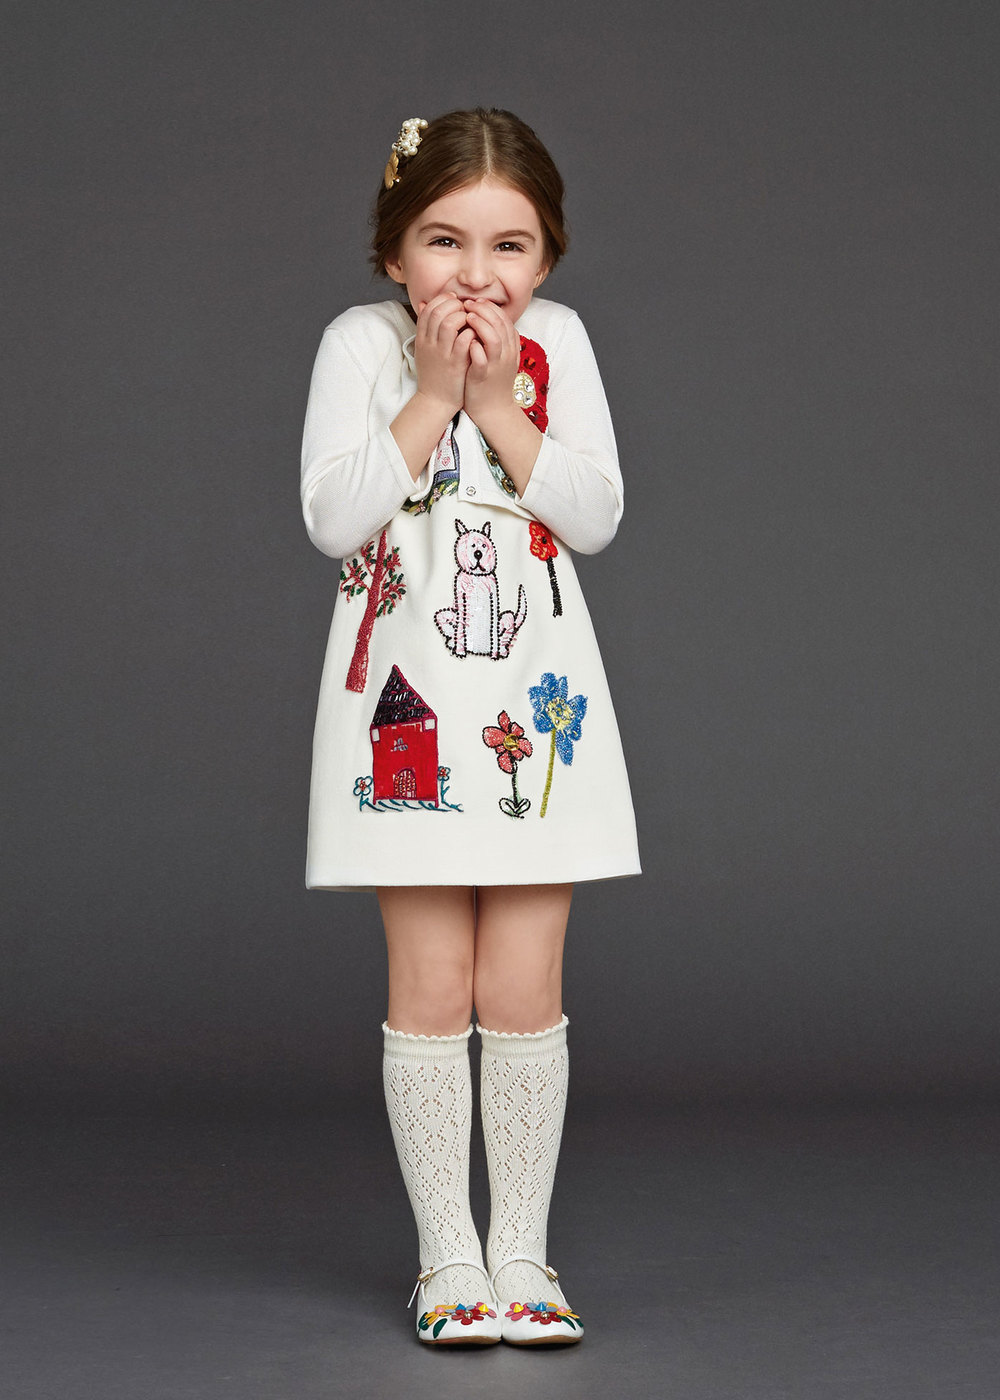 dolce-and-gabbana-winter-2016-child-collection-47-zoom.jpg